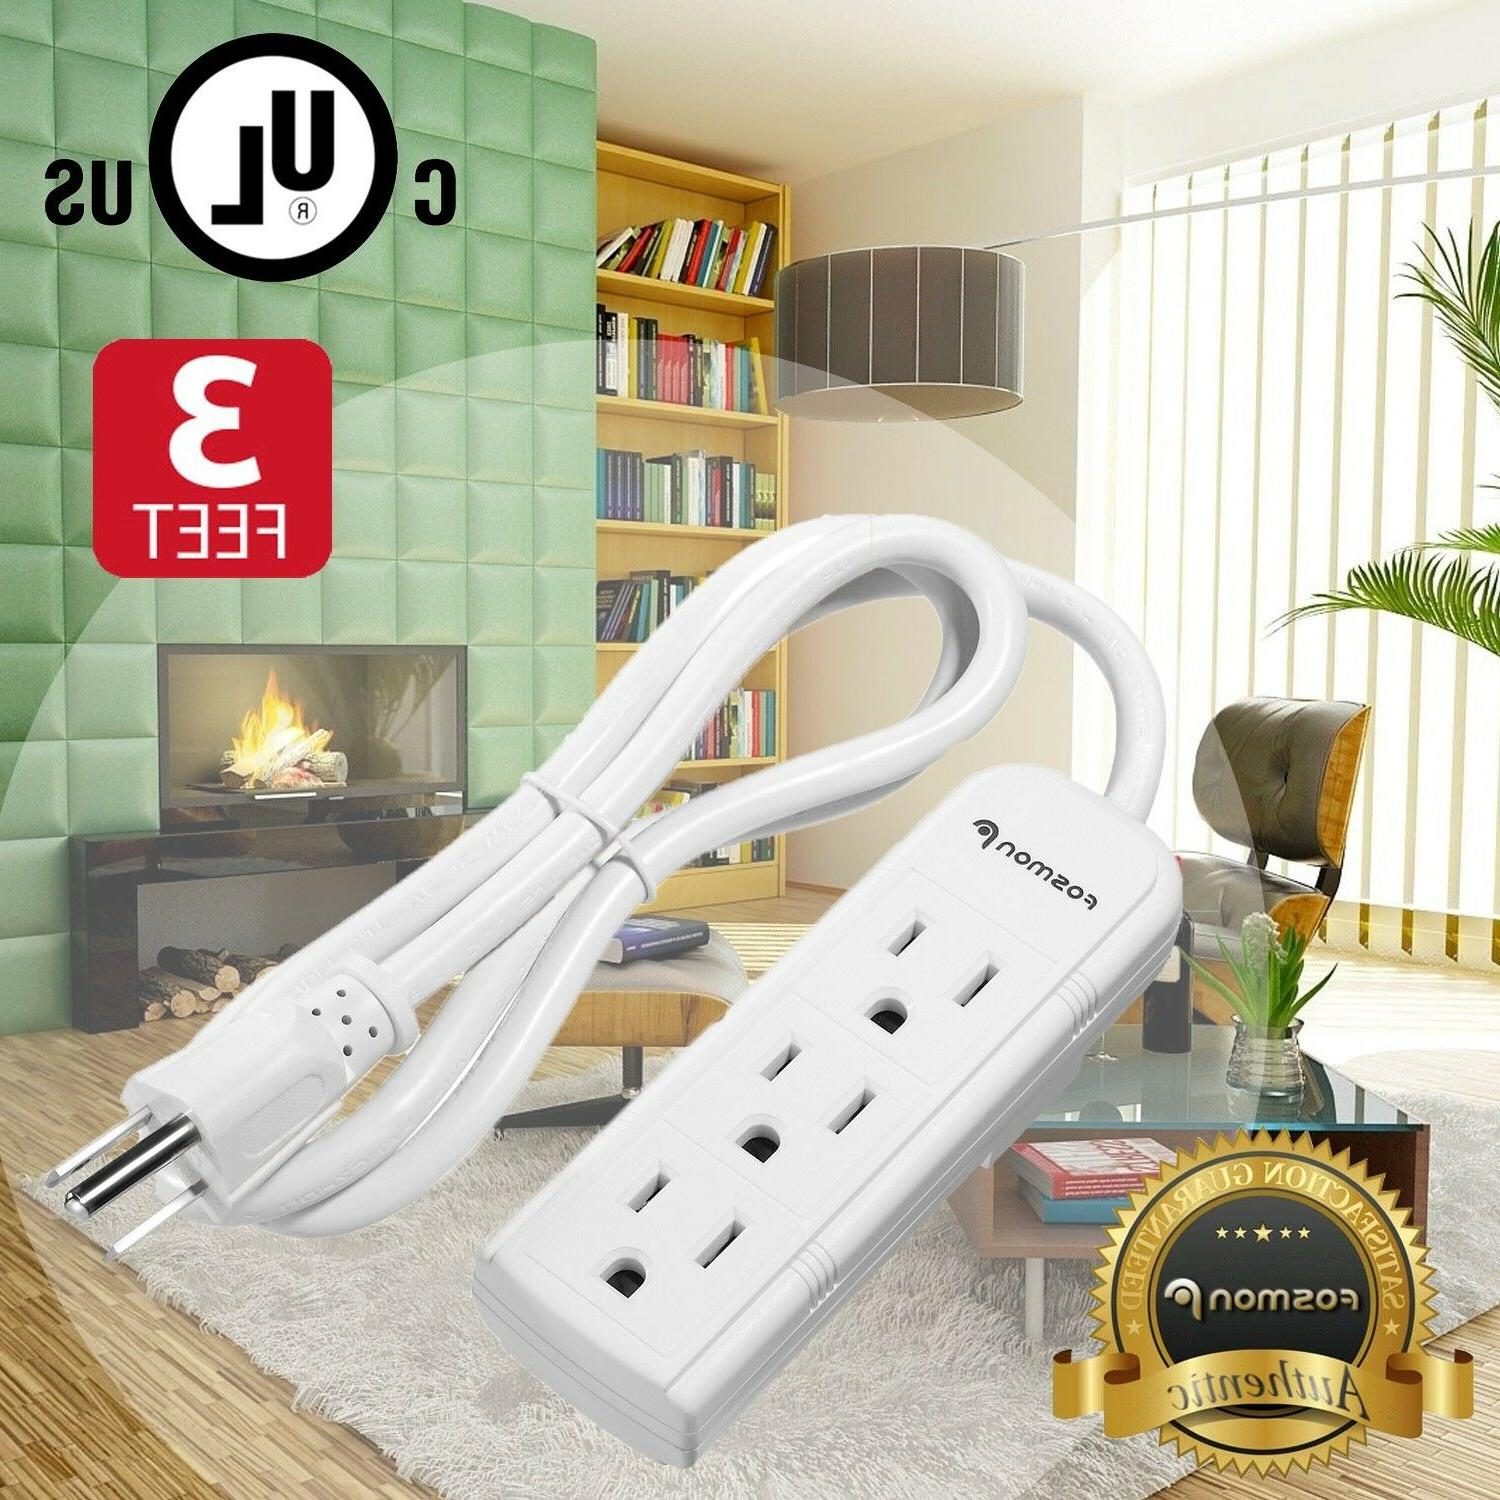 3ft 3 outlet power strip extension cord